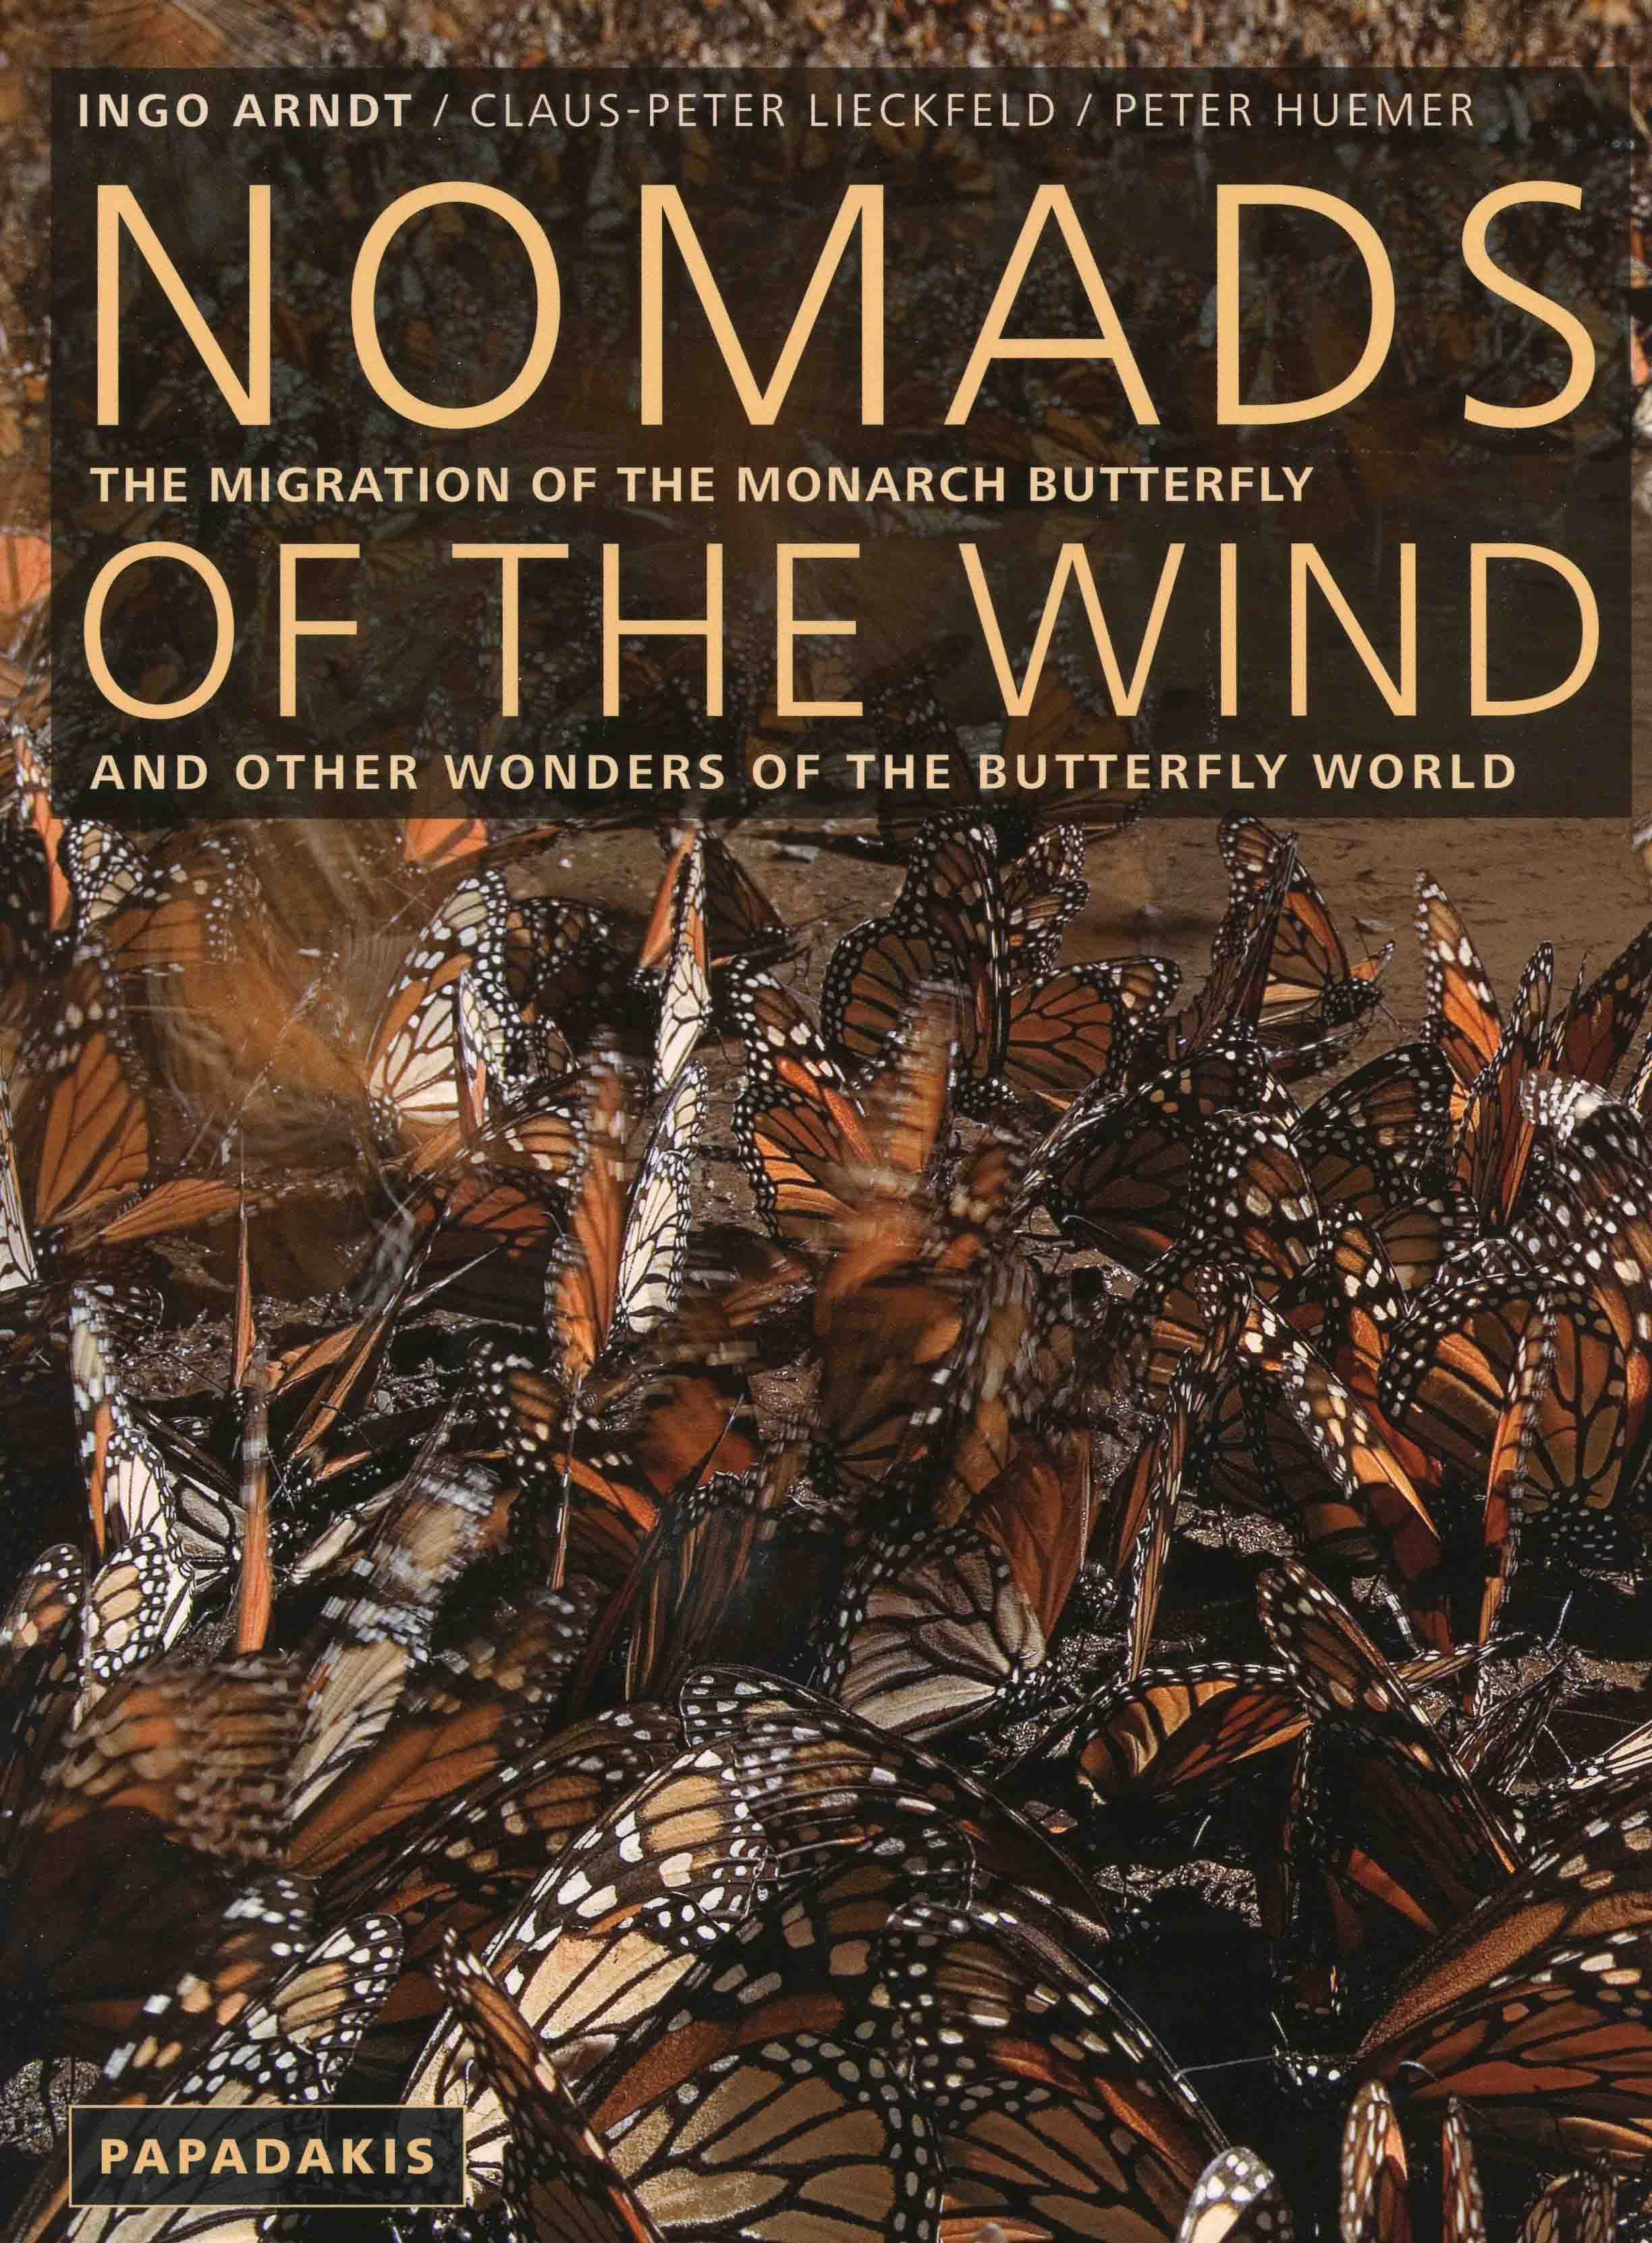 Image for Nomads of the Wind: The Migration of the Monarch Butterfly and other Wonders of the Butterfly World,